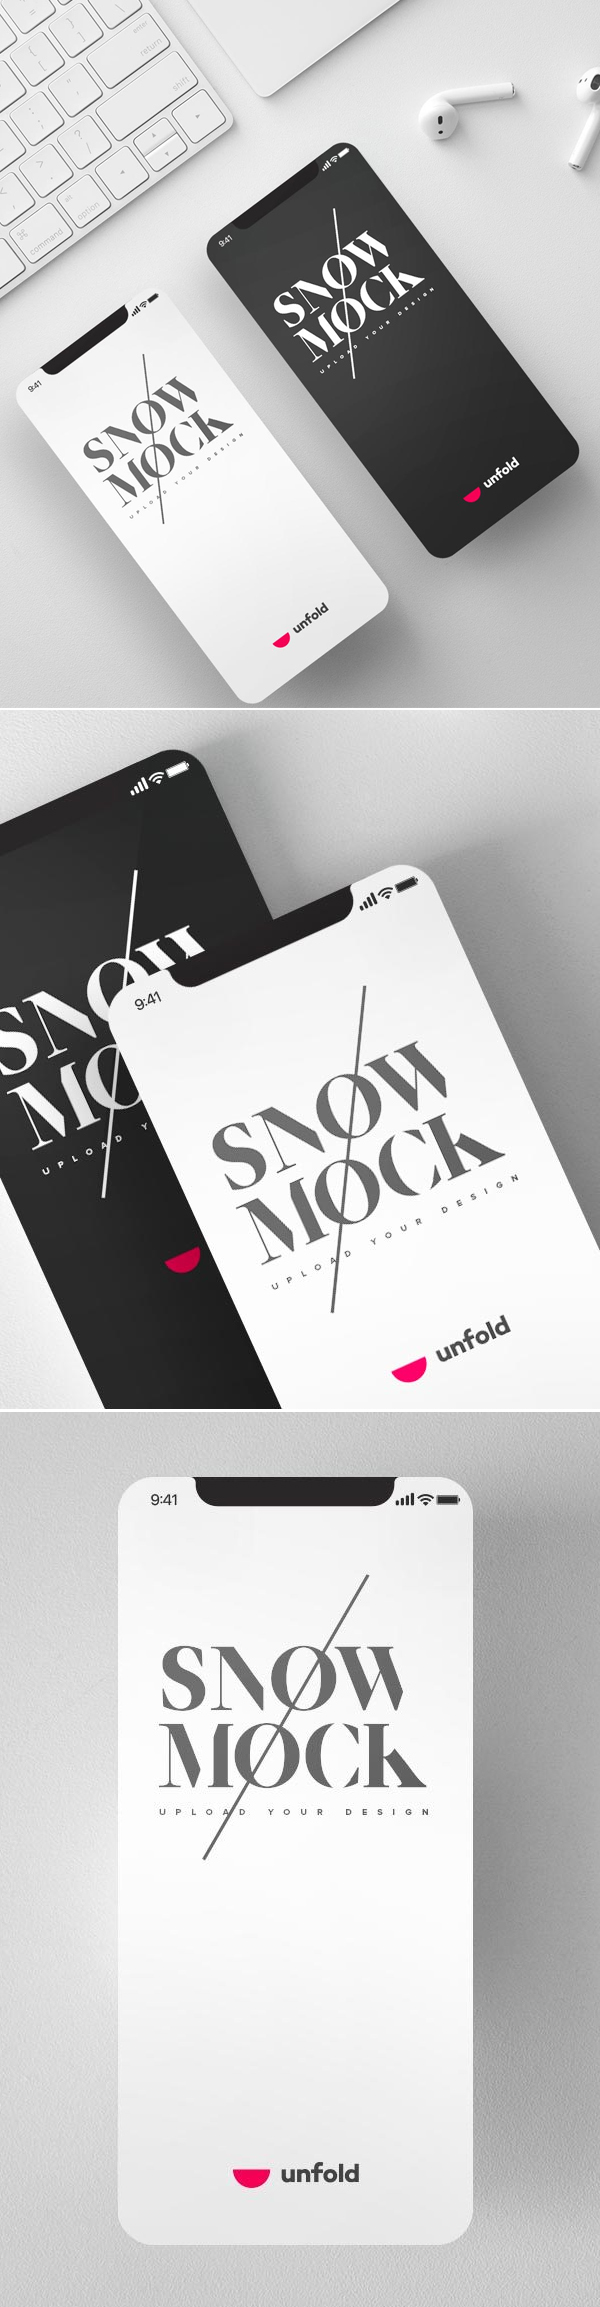 New Free iPhone X Mockups with Different Perspective